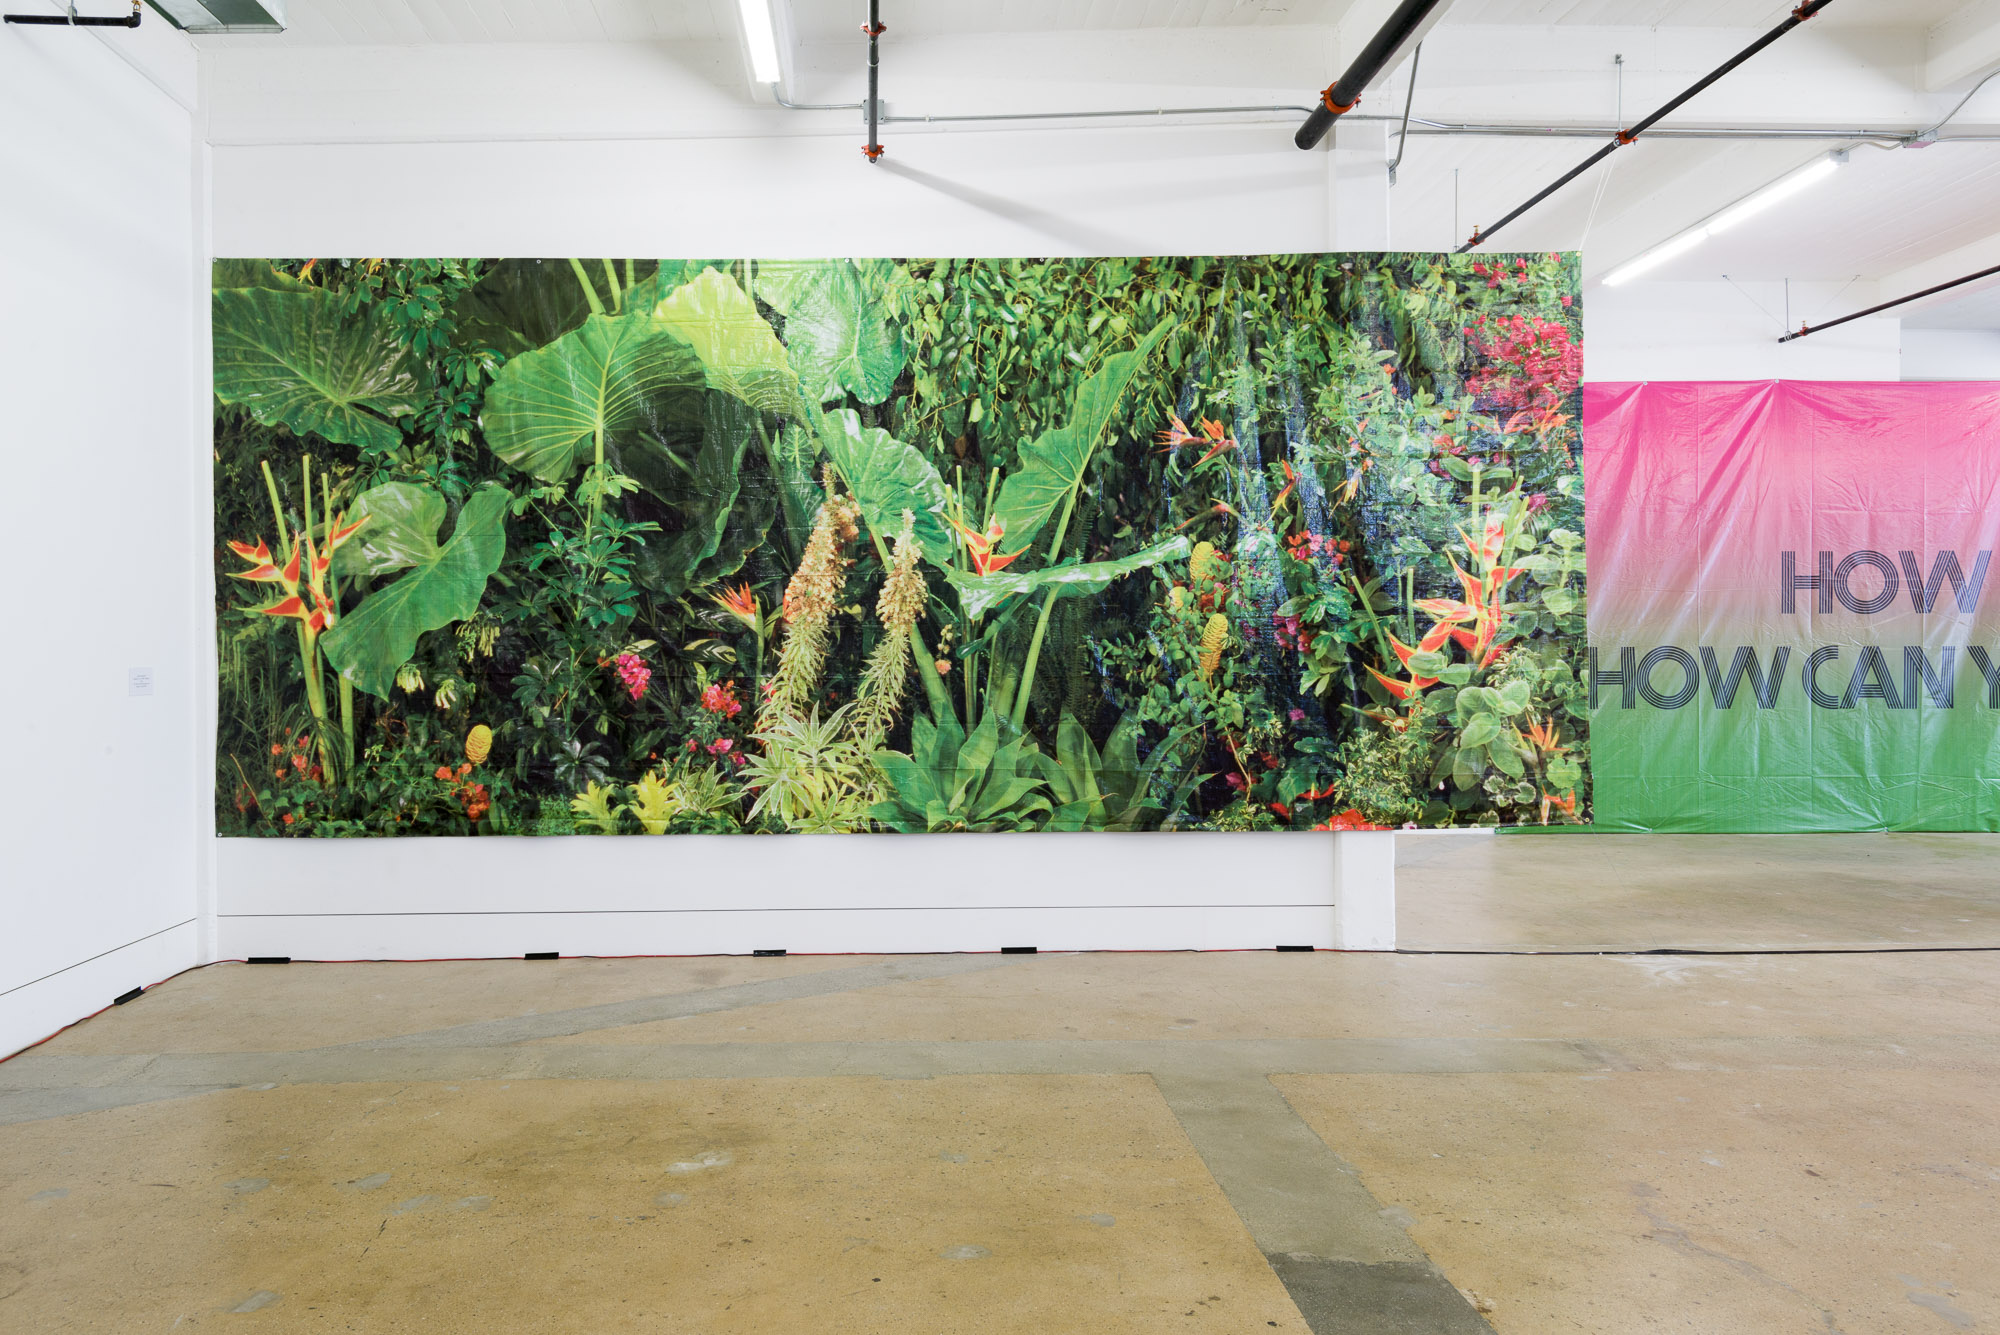 Installation view, The Manifest Destiny Billboard Project Exhibition, LAND and Los Angeles Confidential, Los Angeles, CA, June 2015